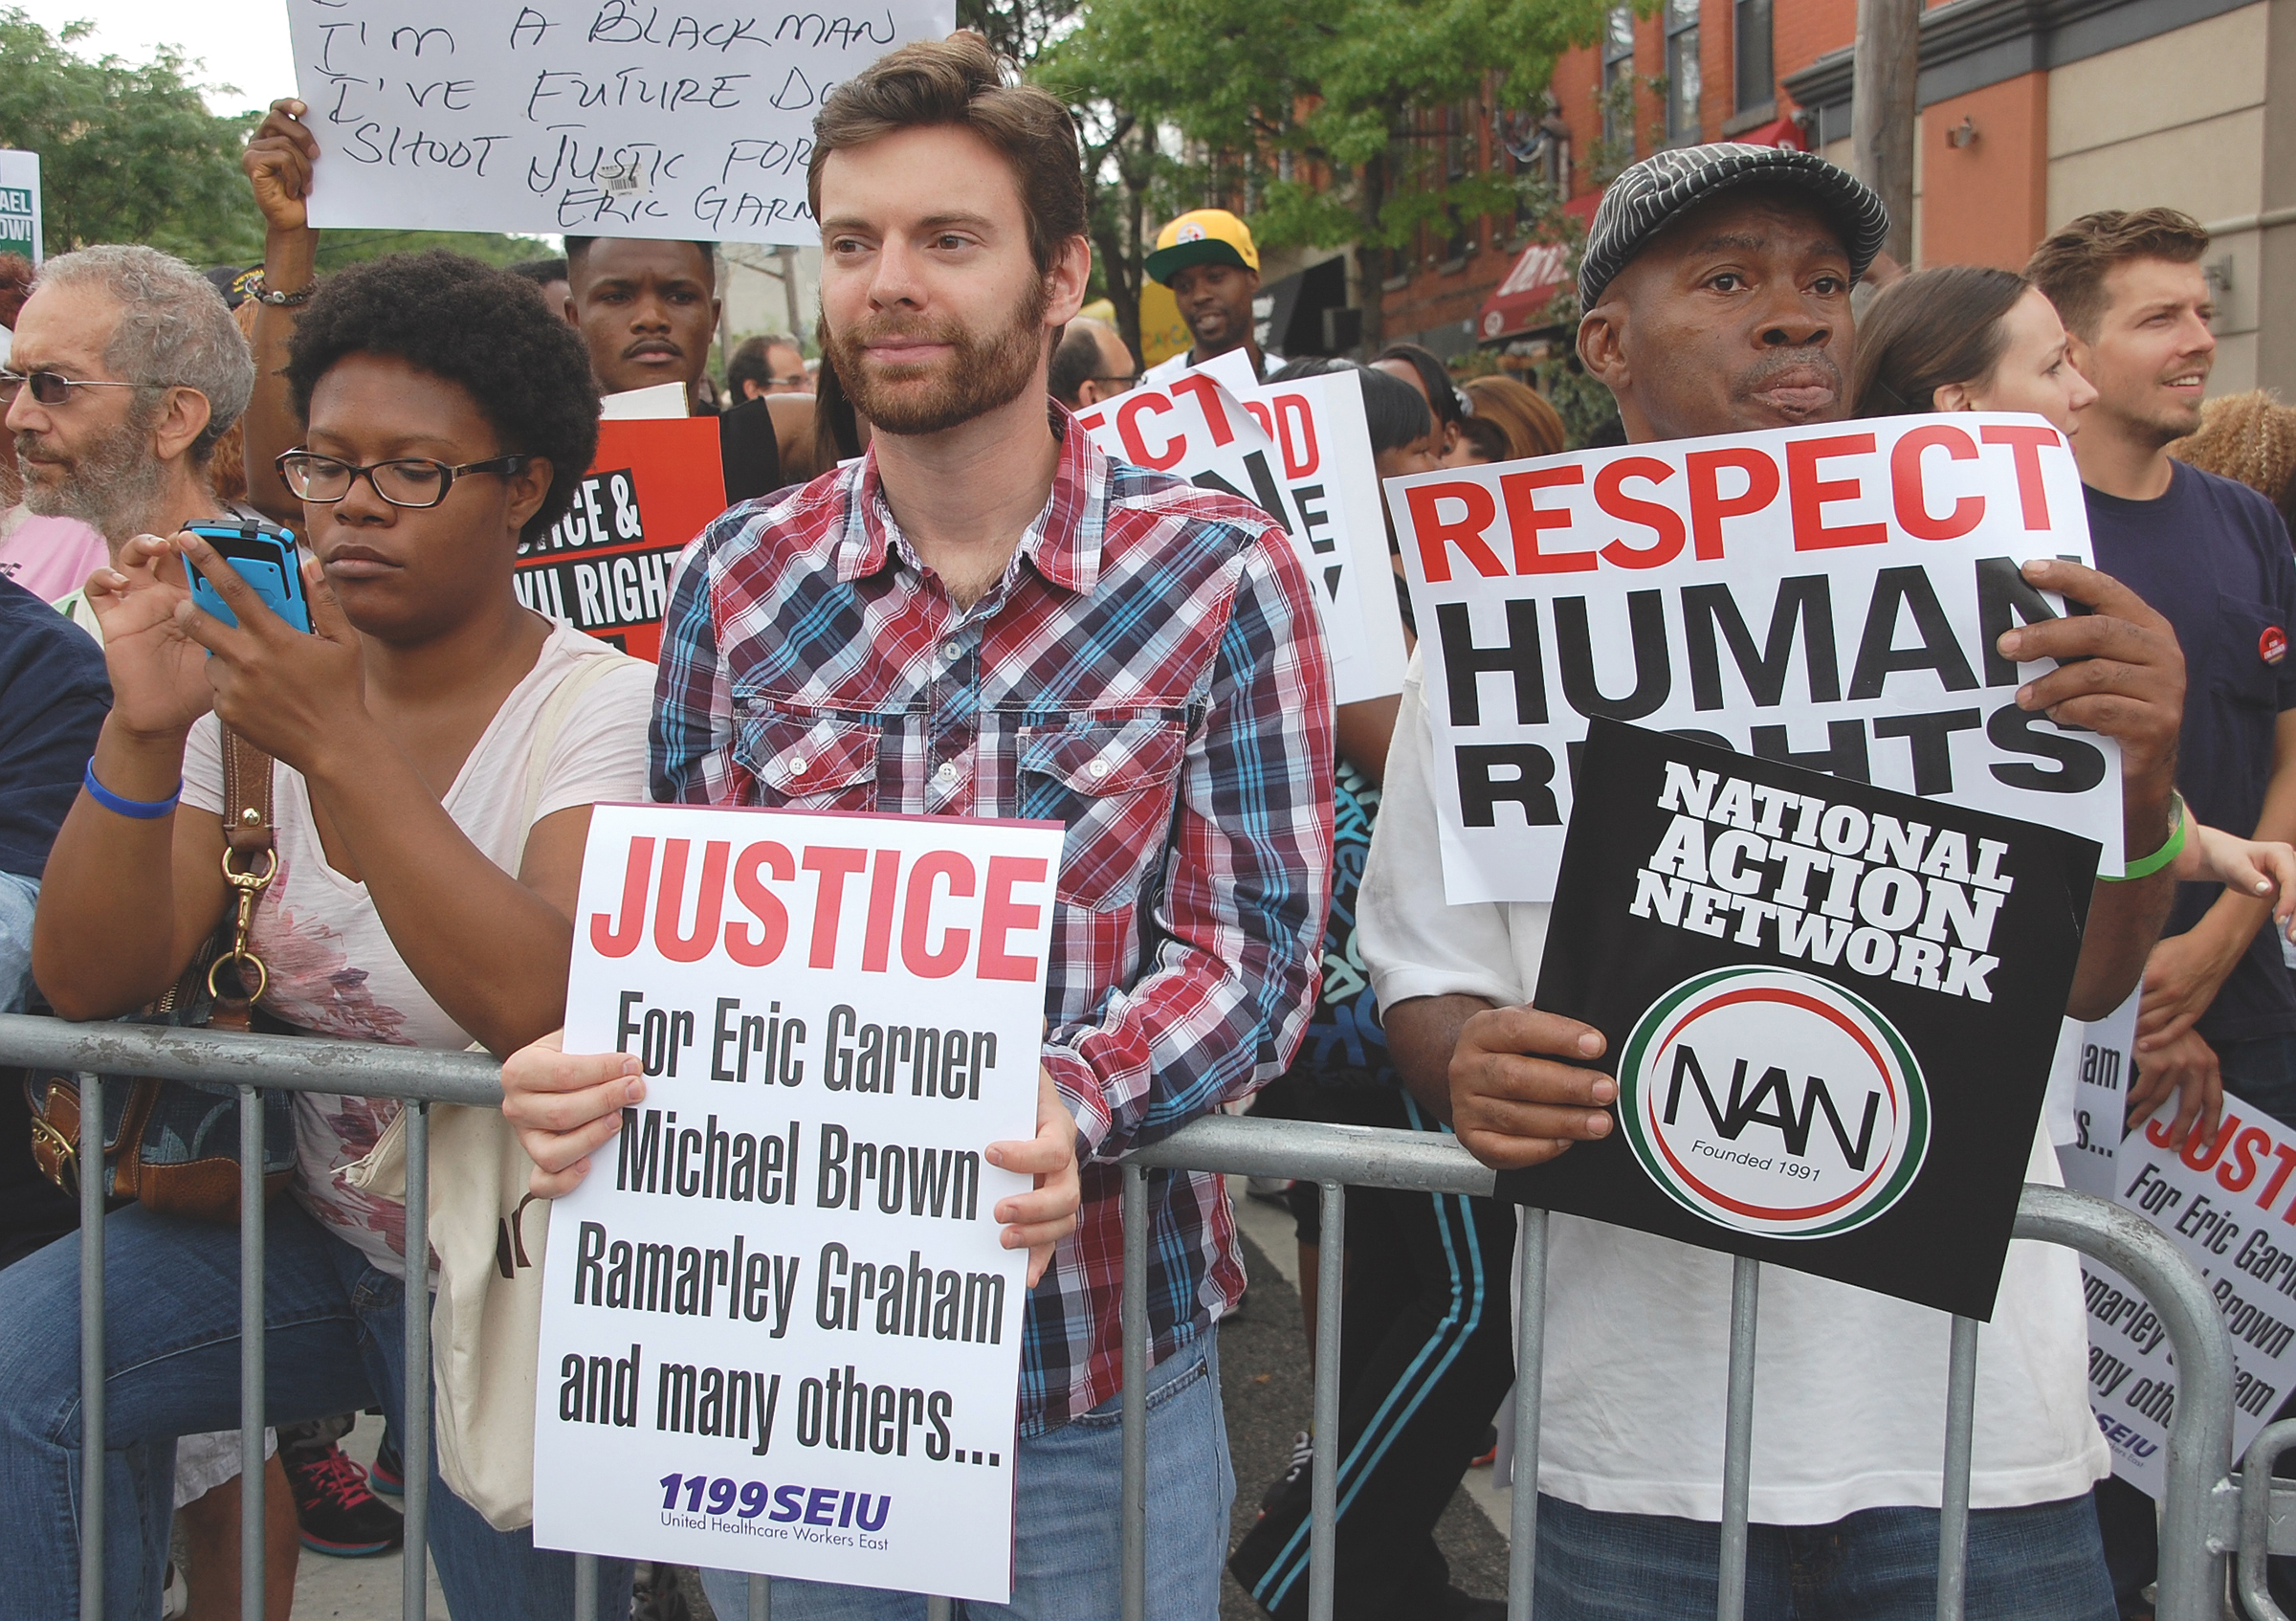 """STATEN ISLAND, N.Y. — Protesters at the """"We Will Not Go Back"""" march and rally called by Al Sharpton and the National Action Network to demand justice for the family of Eric Garner whose death was declared a homicide by the NYC Medical Examiner. Garner died on July 17, 2014 while being arrested by police. The ME ruled the cause of death was an illegal chokehold (applied by P.O. Daniel Pantaleo) and """"chest compression"""" - prompting civil rights advocates to organize this very large protest (approximately 4000 demonstrators). (Photo: Wikimedia Commons / Credit: """"Thomas Altfather Good"""".)"""